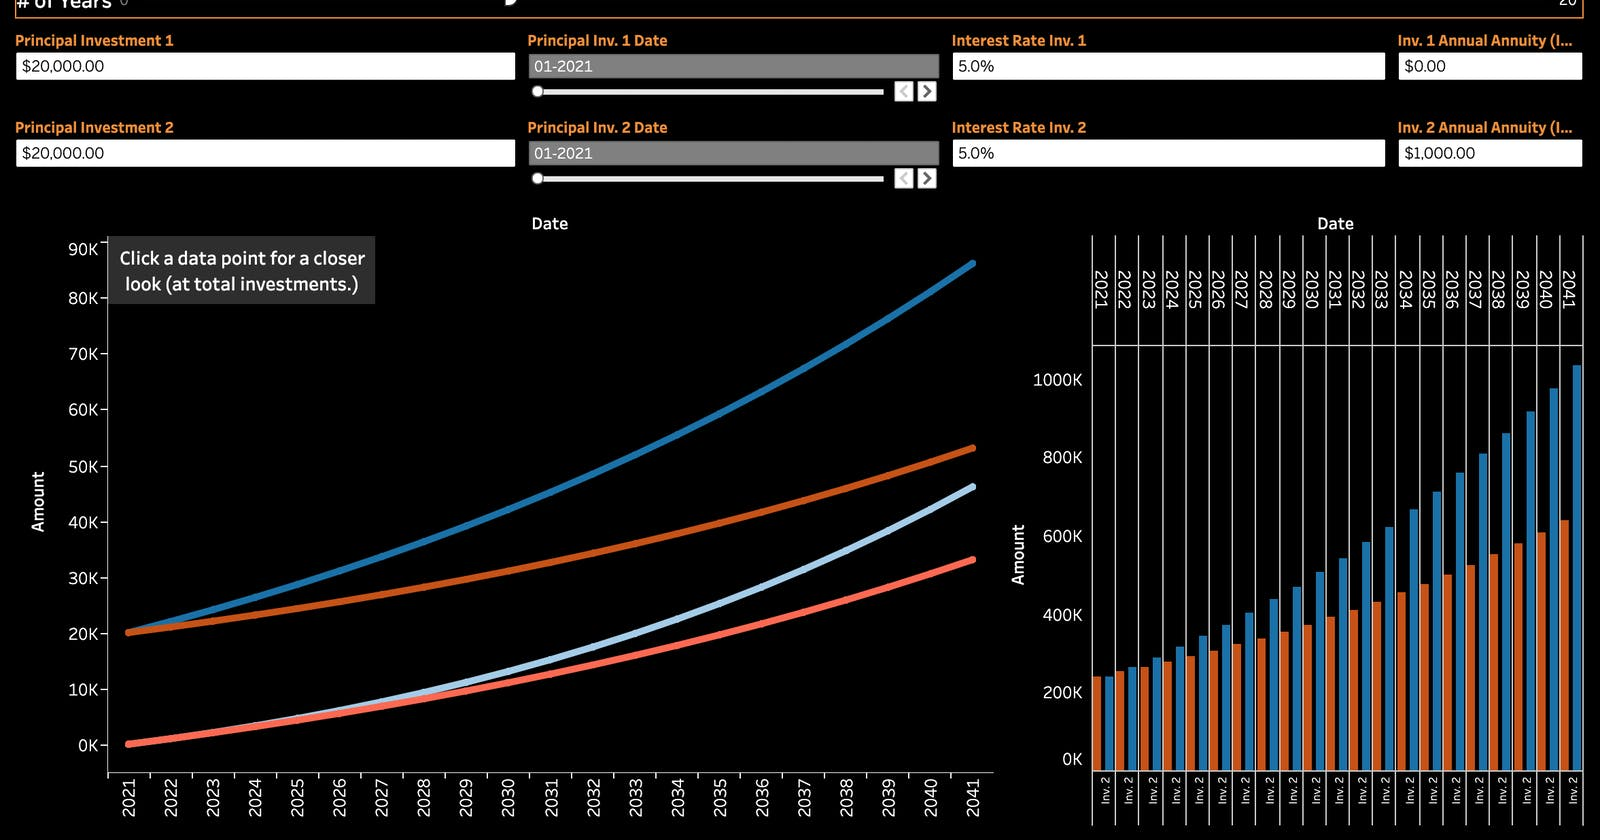 Build an Investment Calculator in Tableau